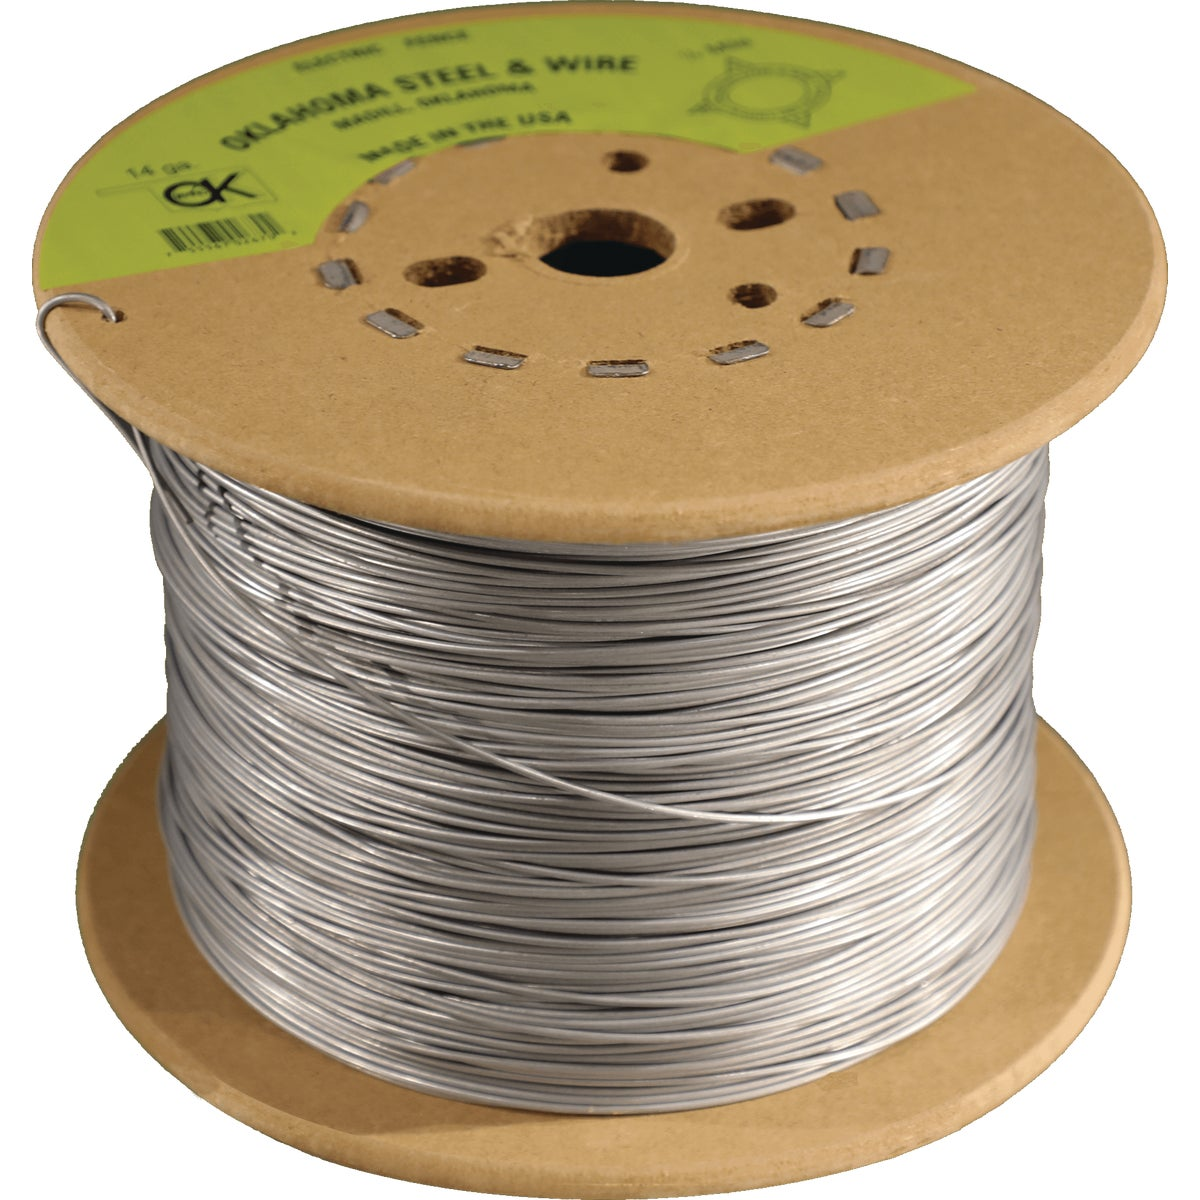 1/2M 14GA ELC FENCE WIRE - 118306 by Bekaert Corp